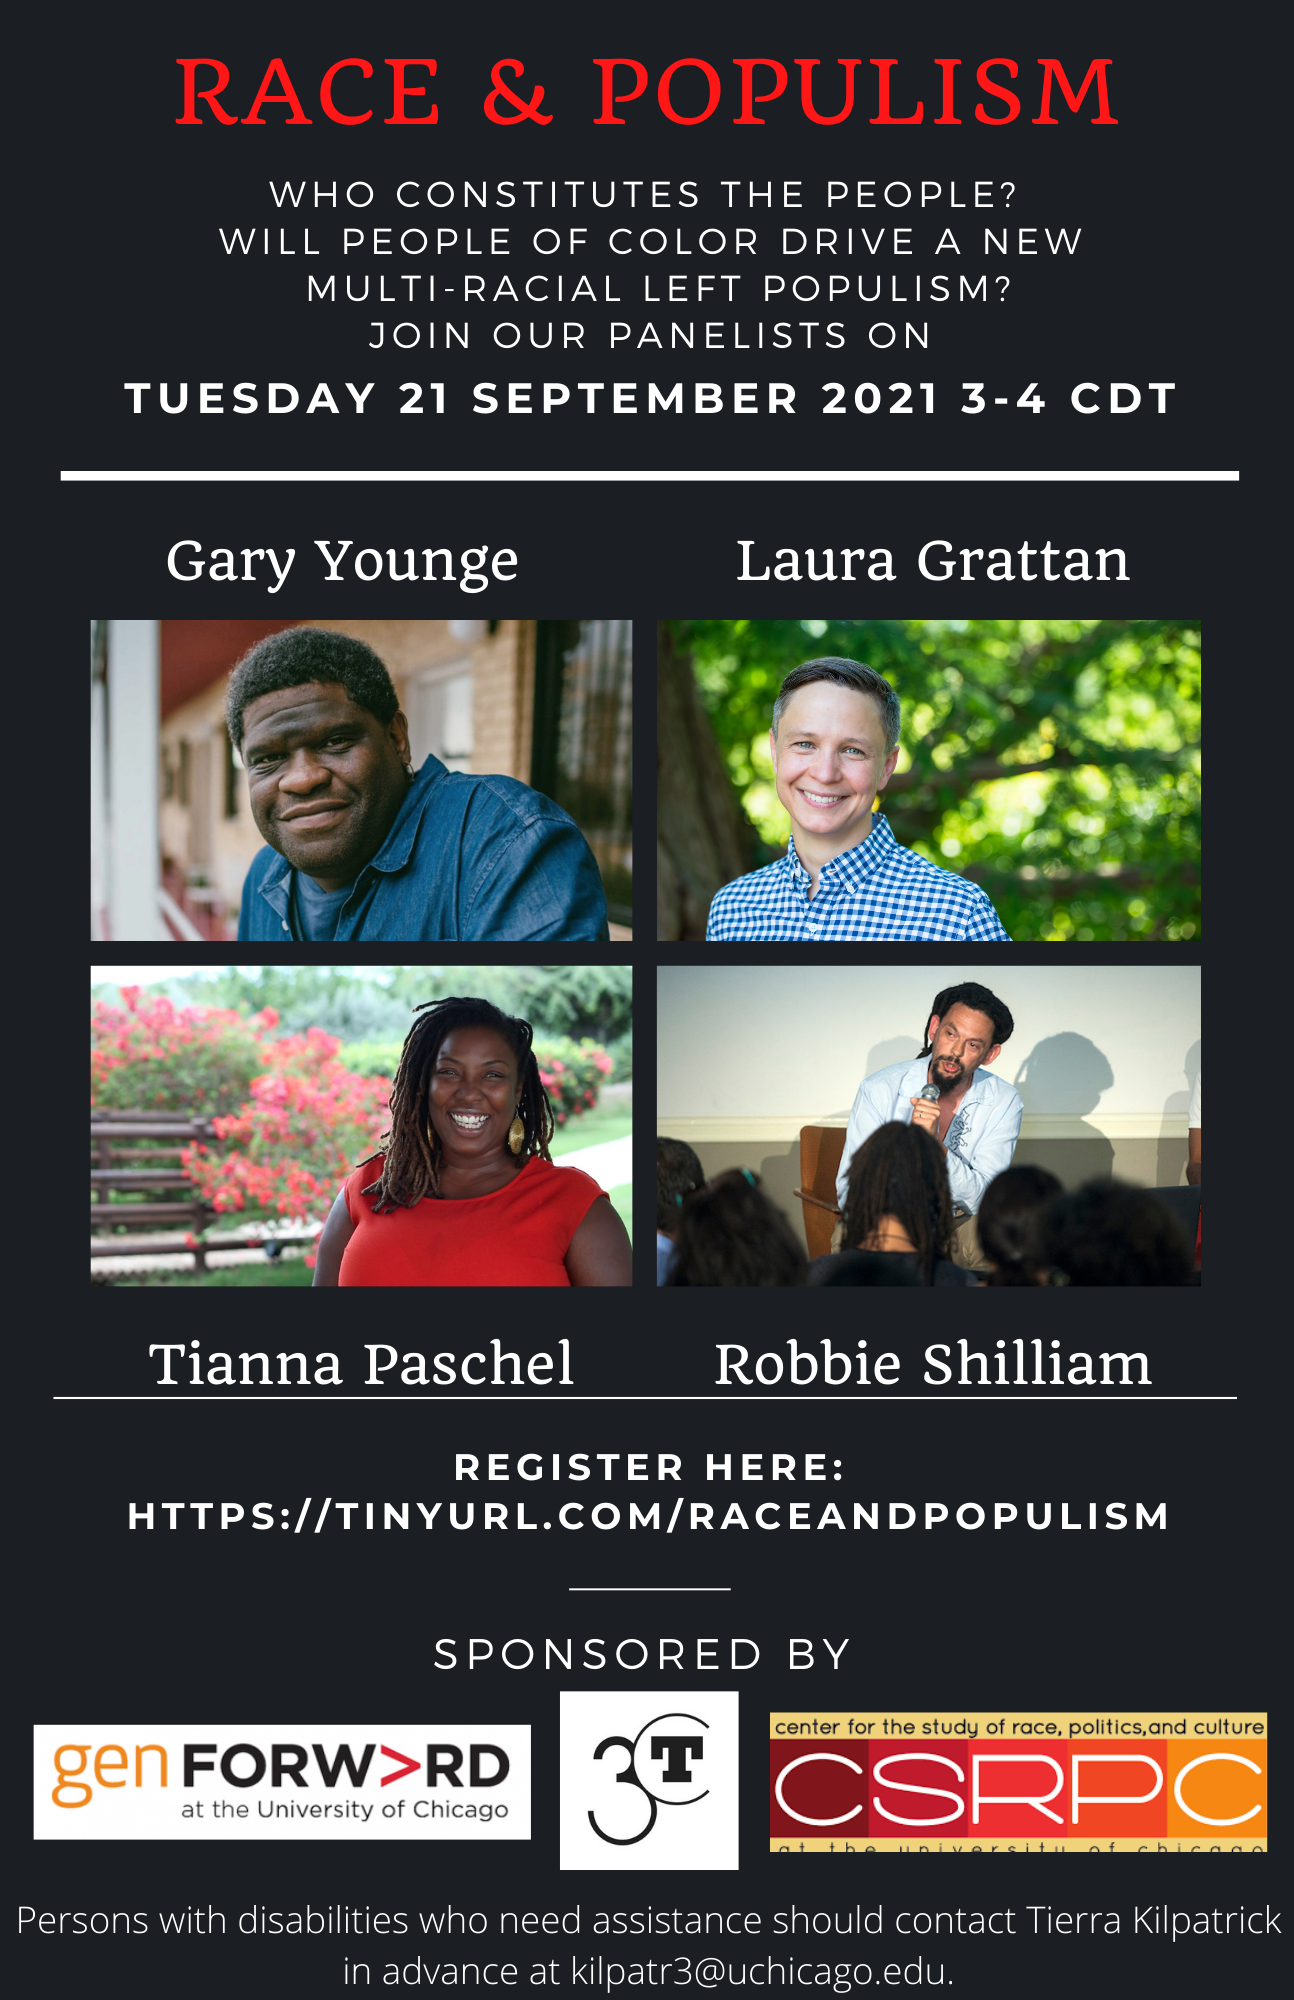 poster for September 2021 event on Race and Populism